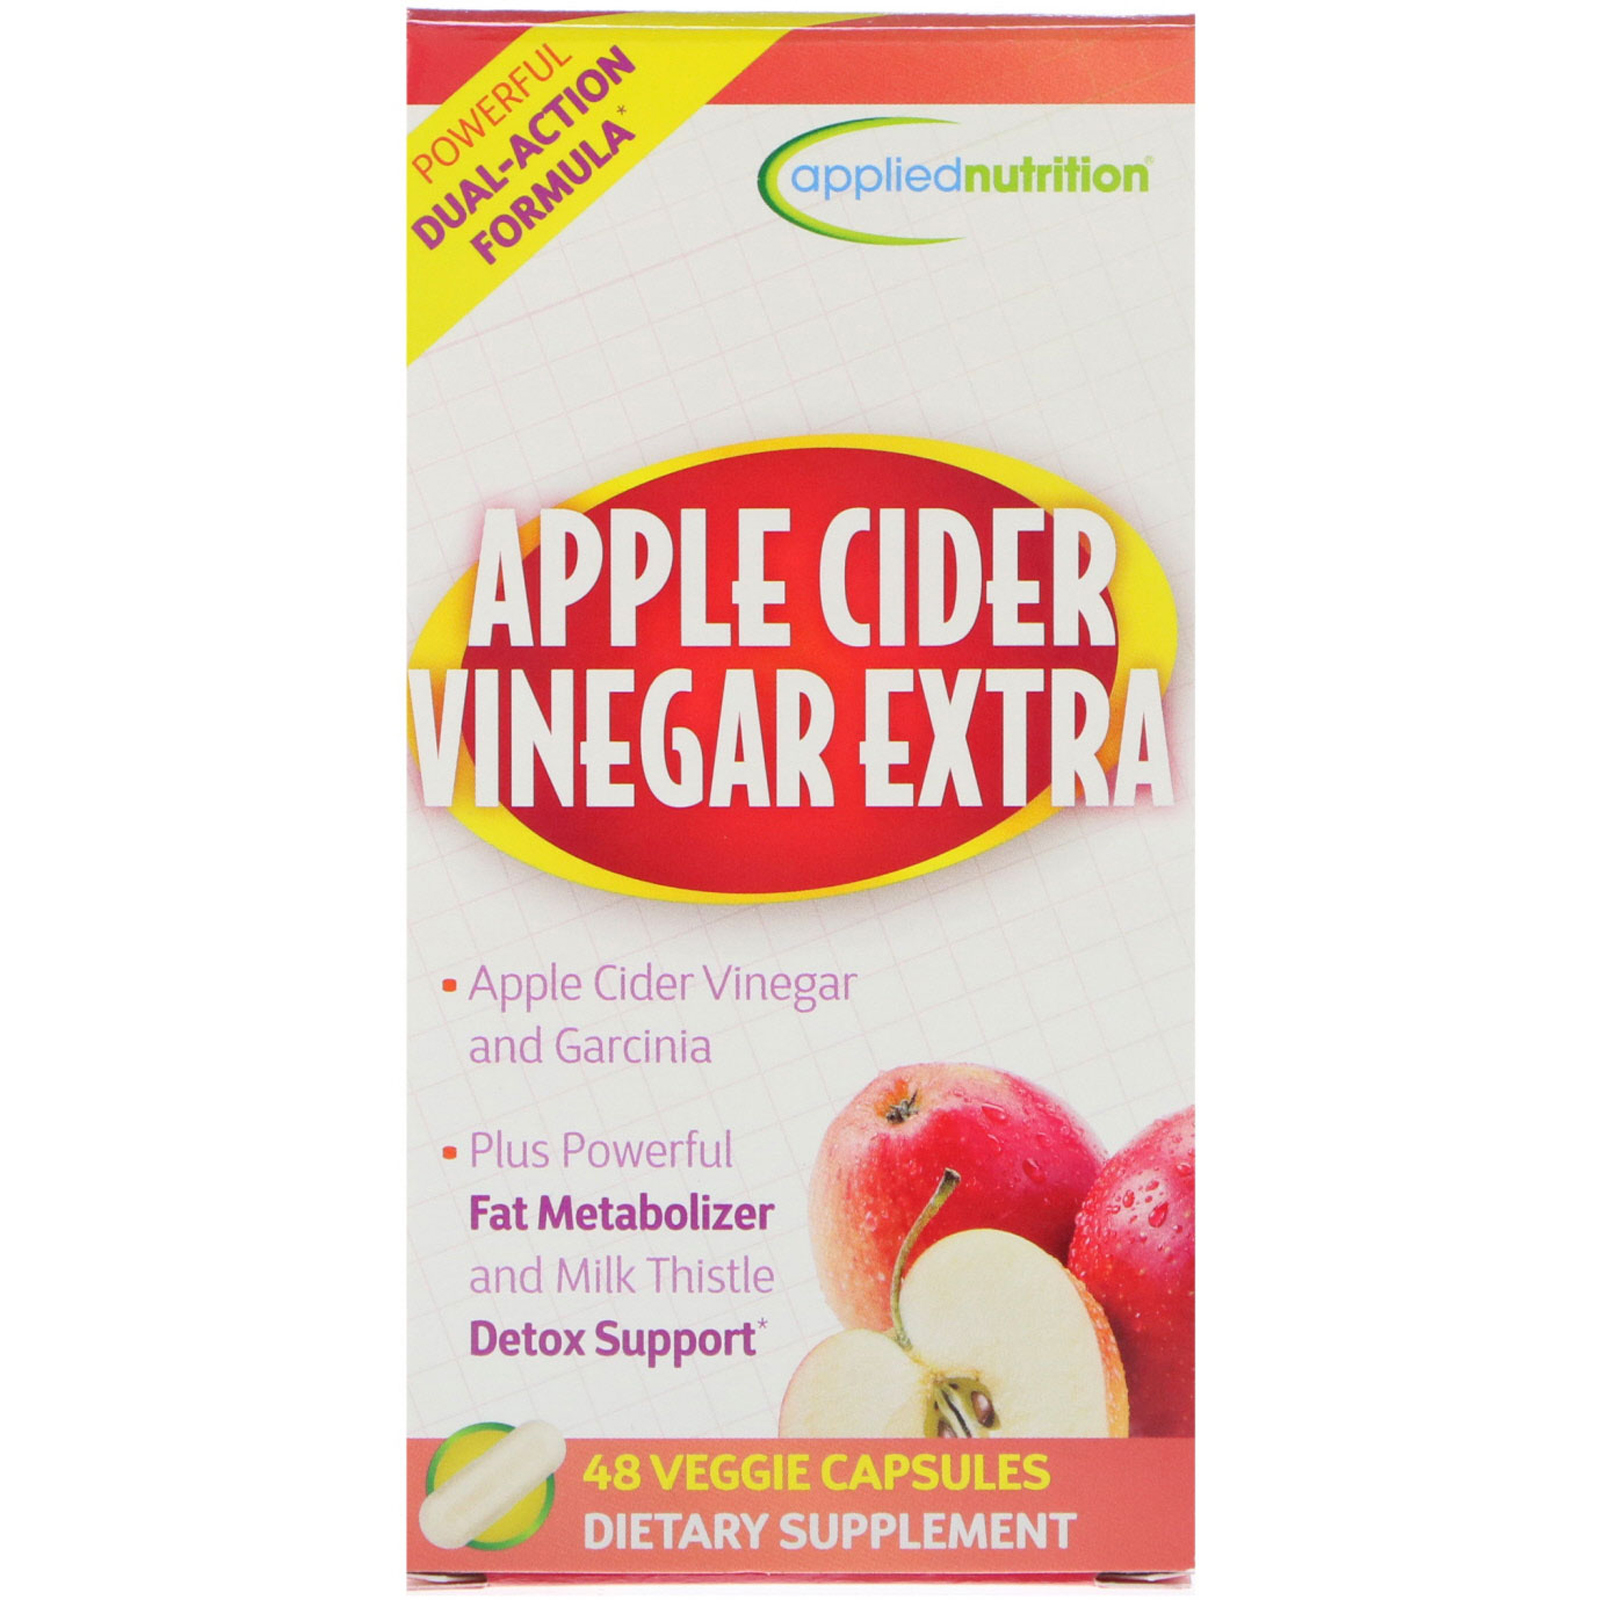 Appliednutrition Apple Cider Vinegar Extra 48 Veggie Capsules Iherb